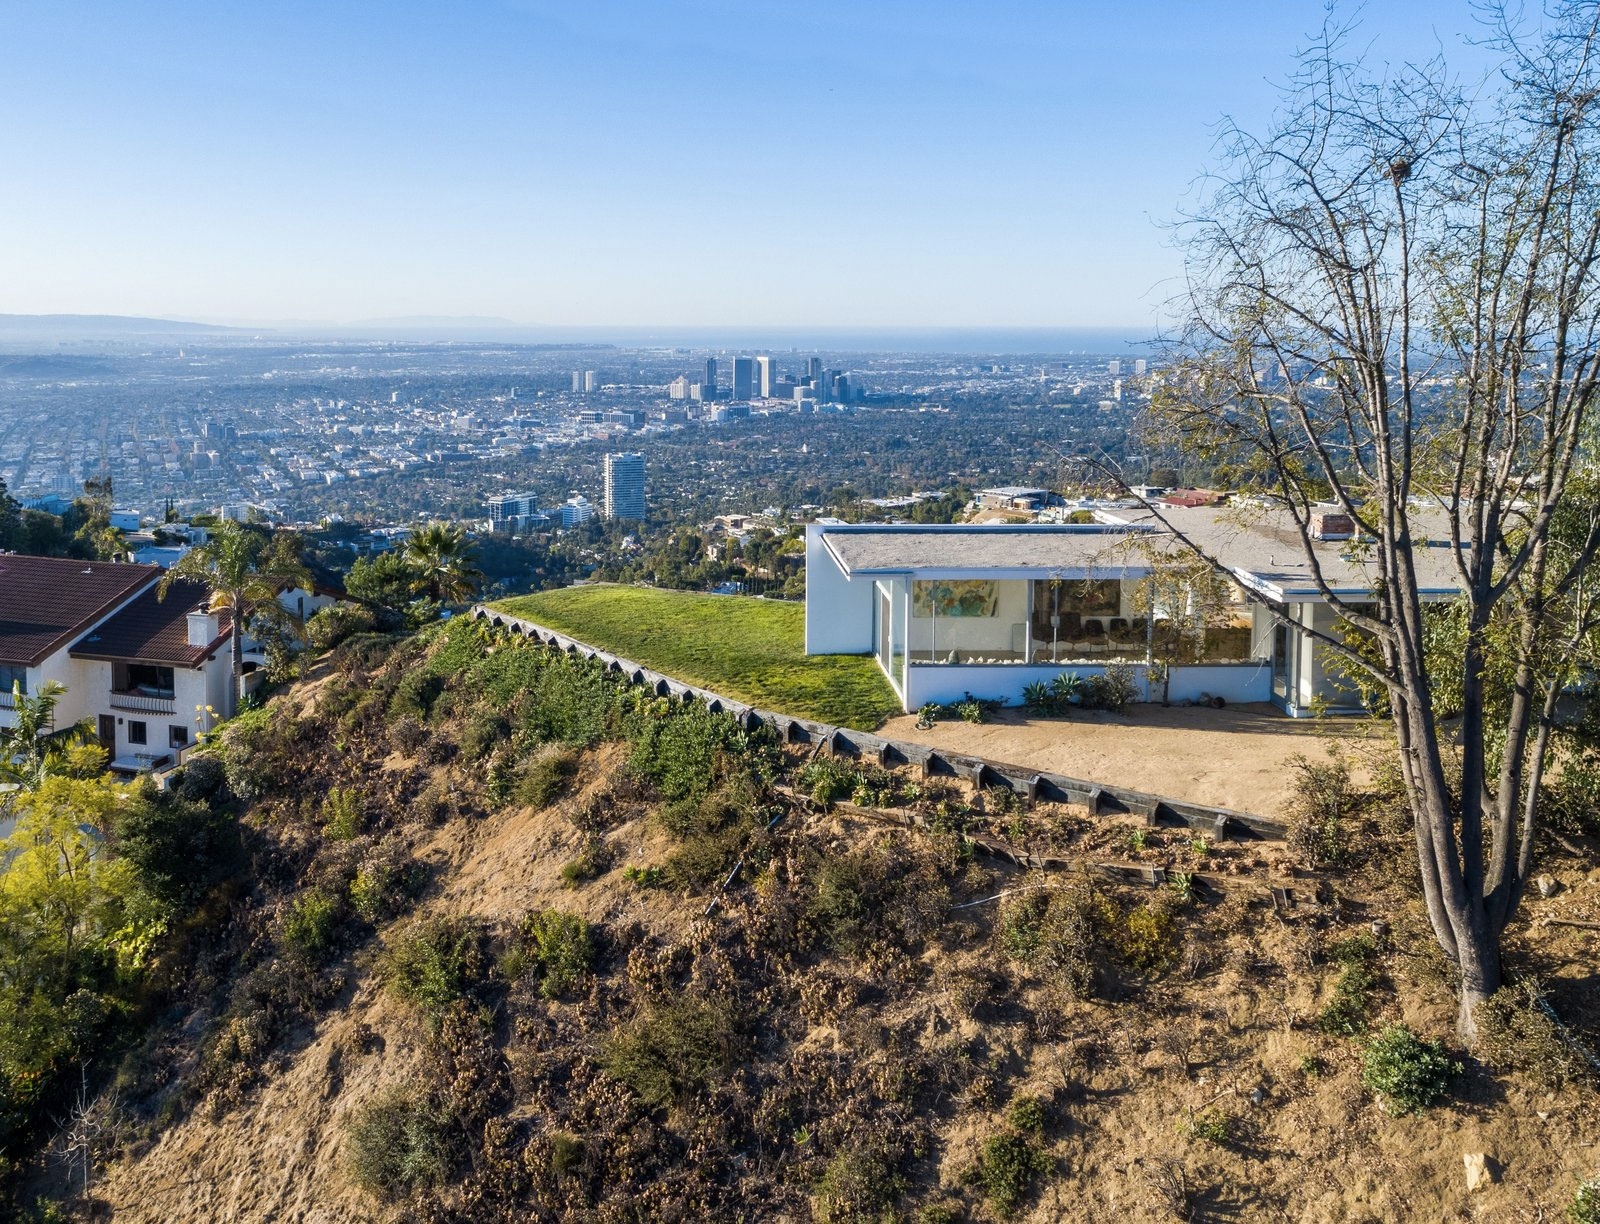 Richard Neutra's Chuey House in Los Angeles